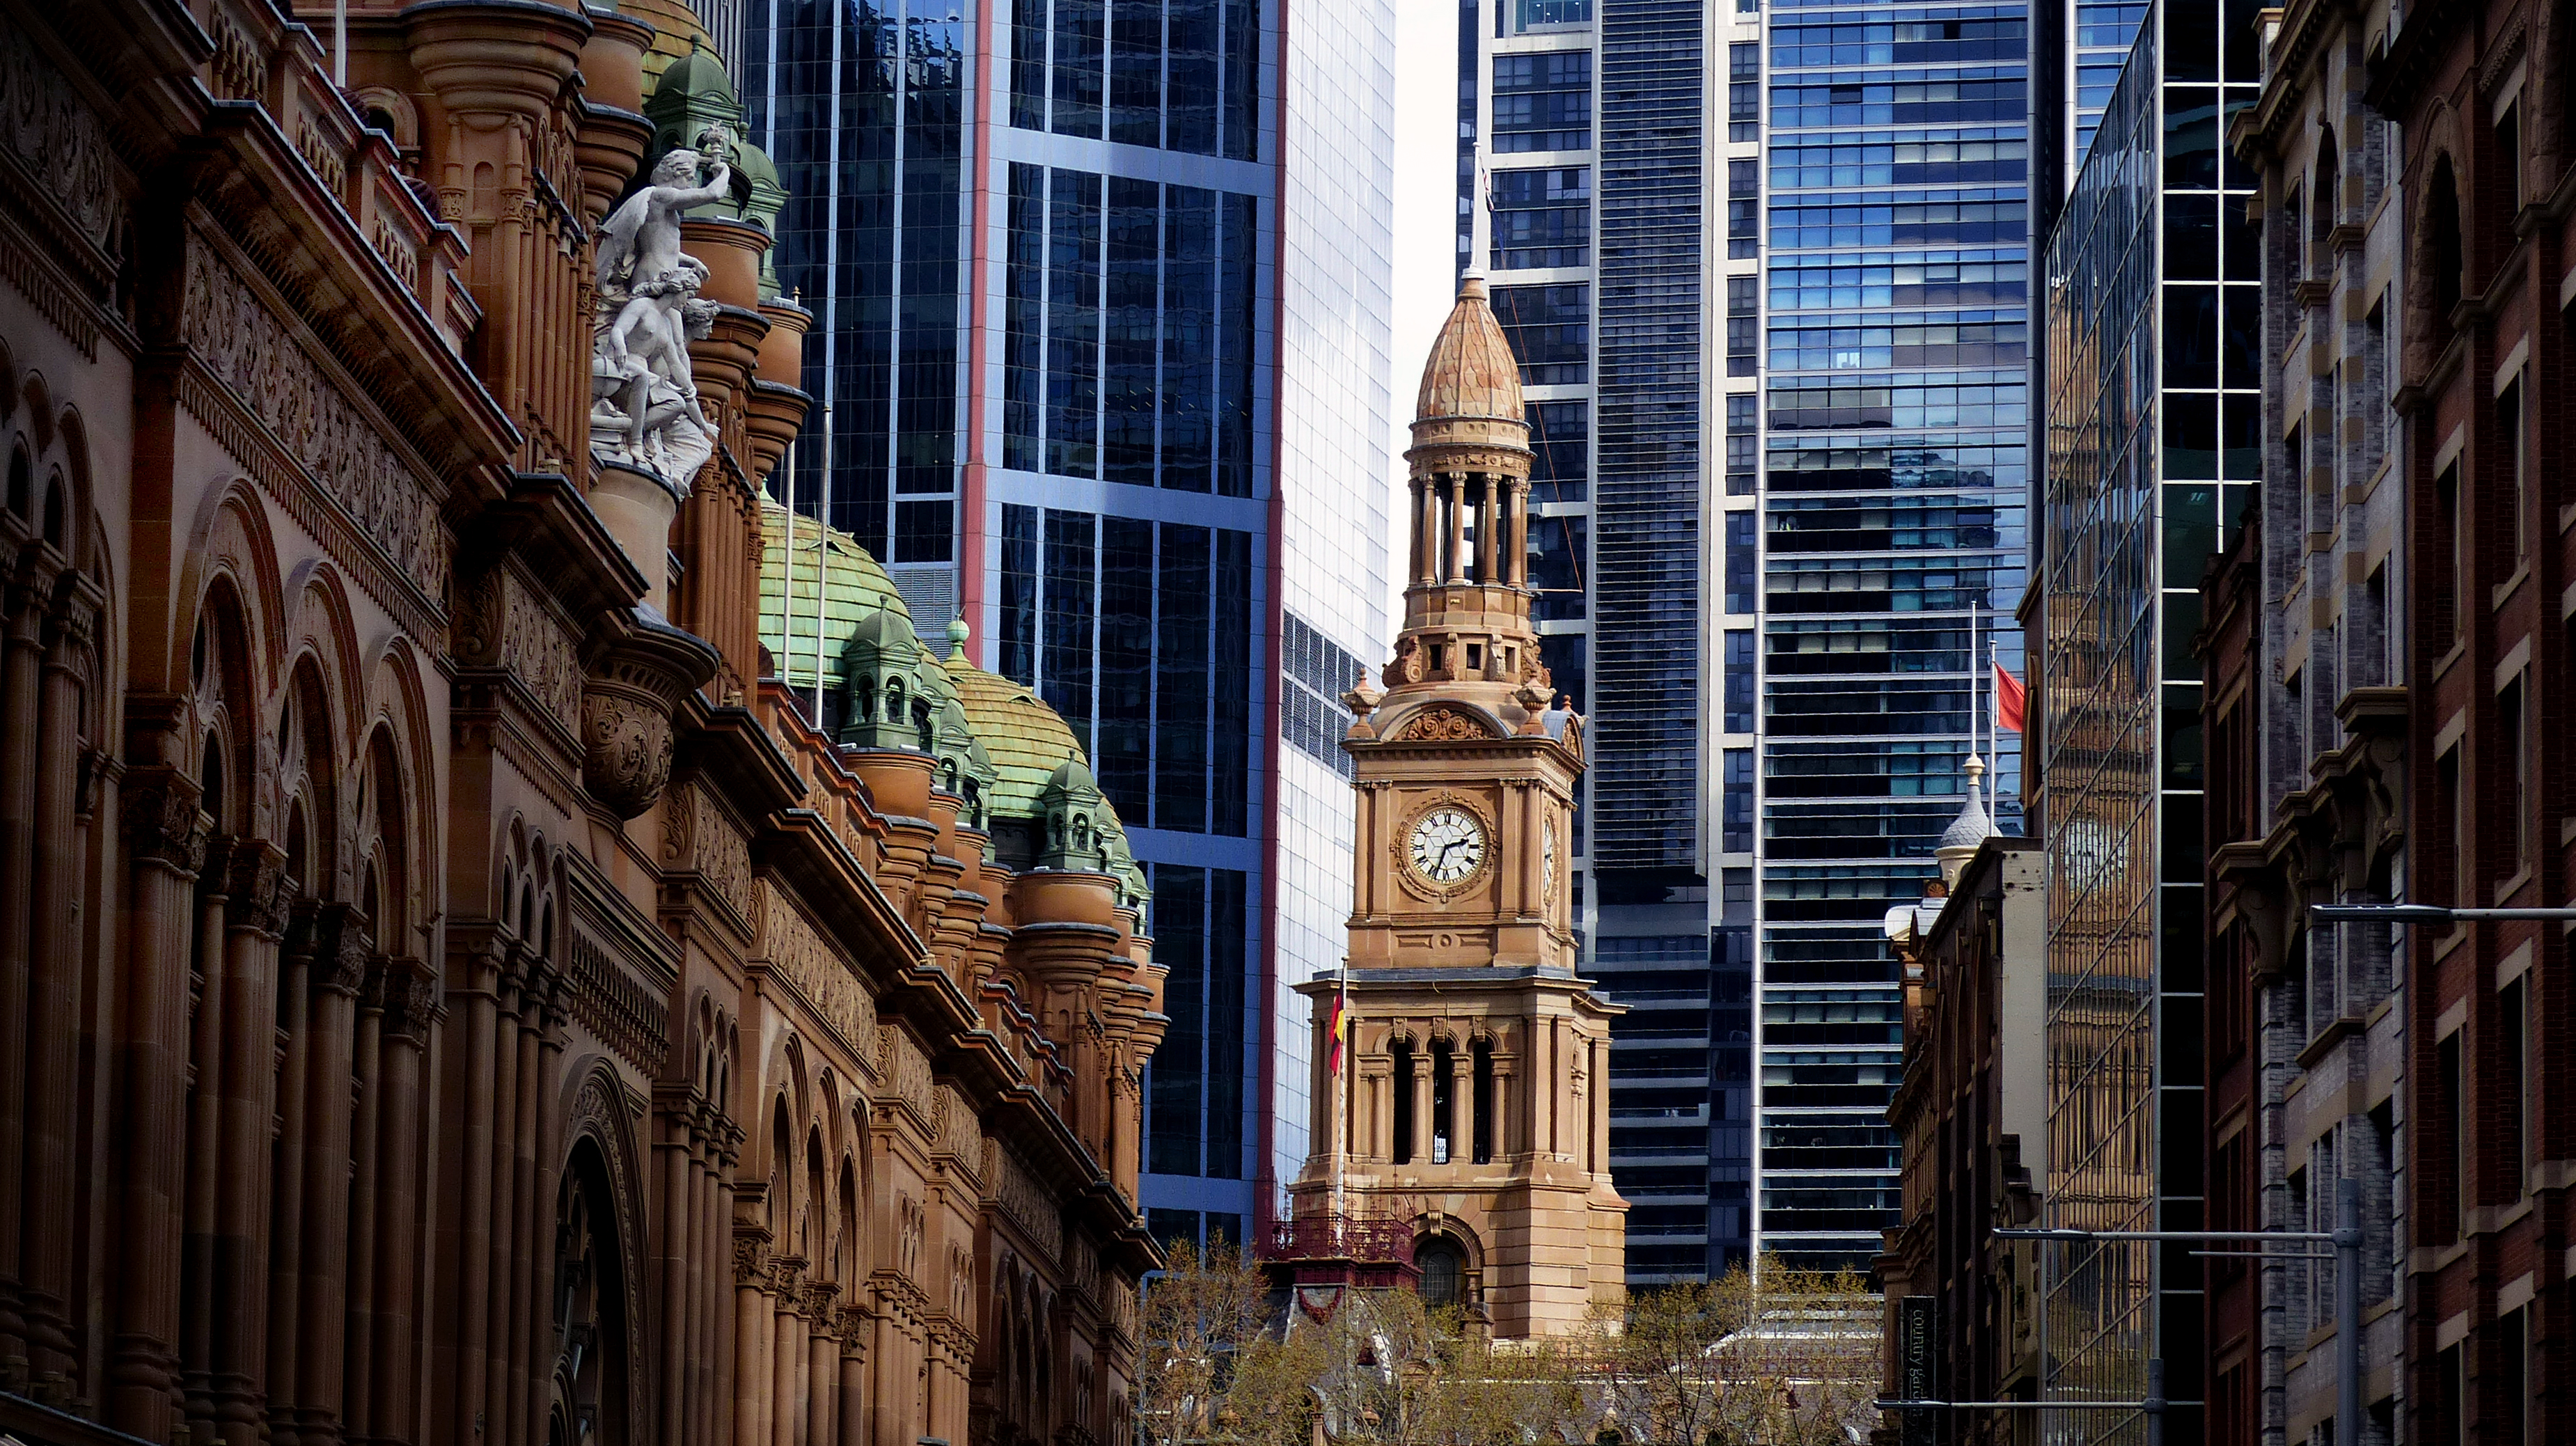 Sydney Town Hall clock tower., Architecture, Building, Cityscape, Clock, HQ Photo